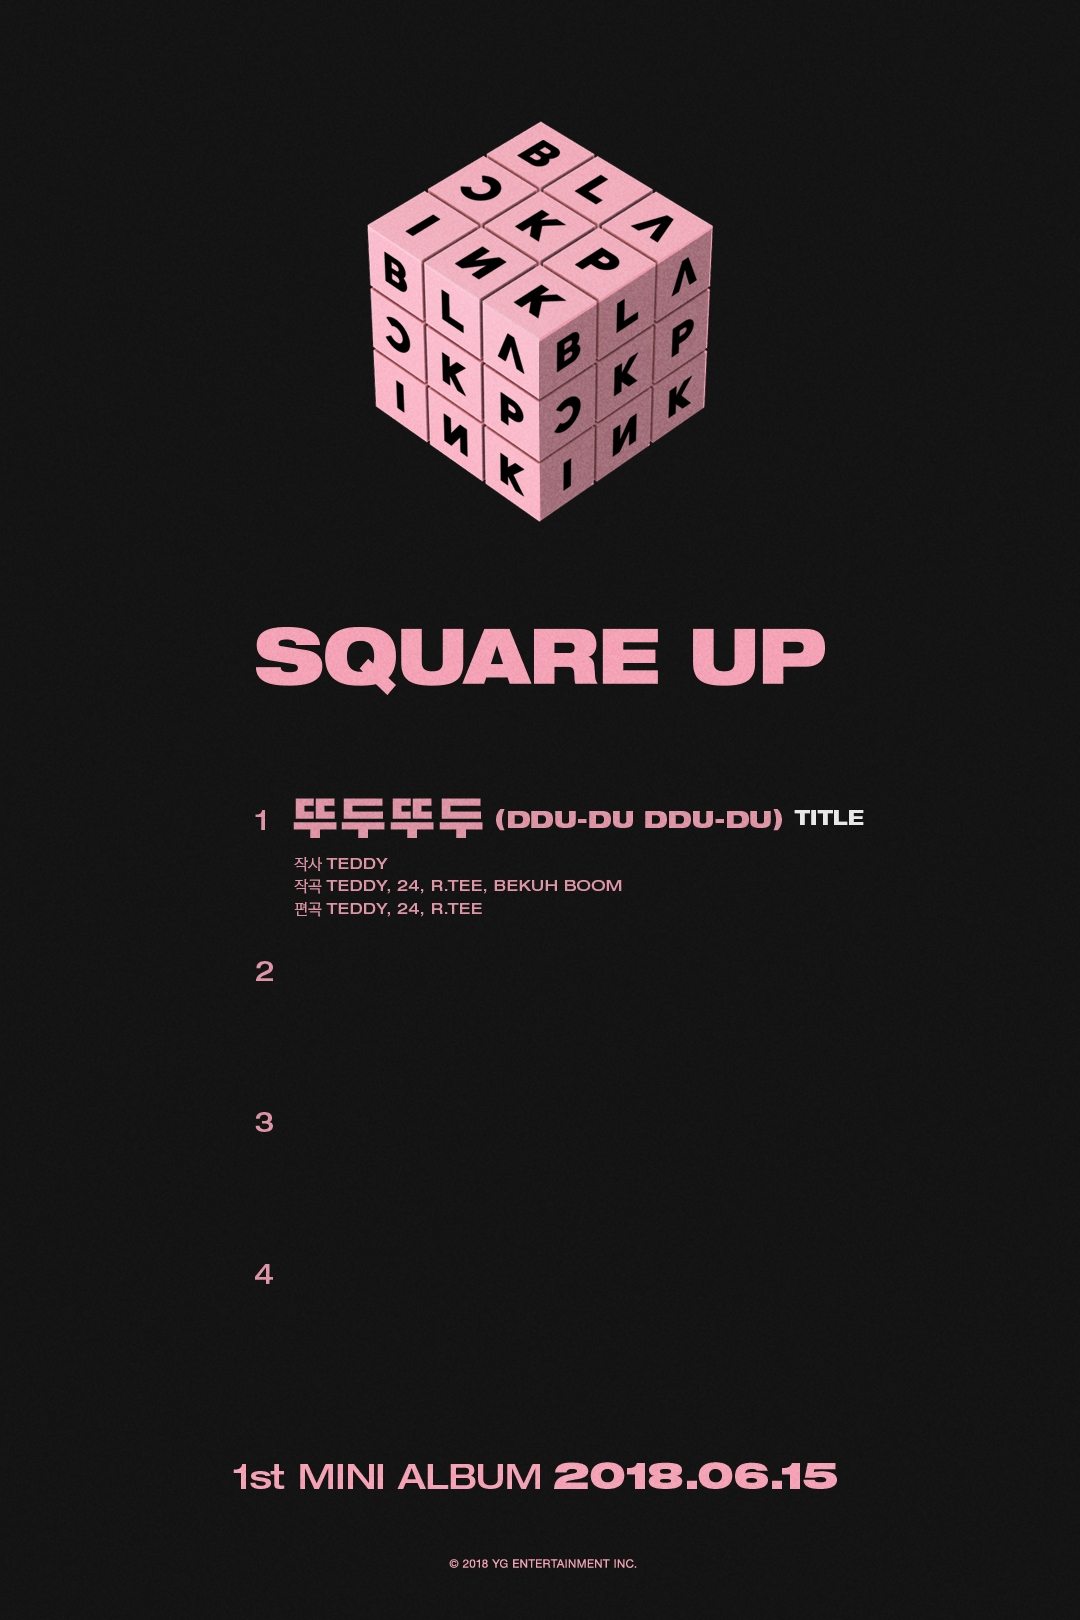 SQUARE UP title track